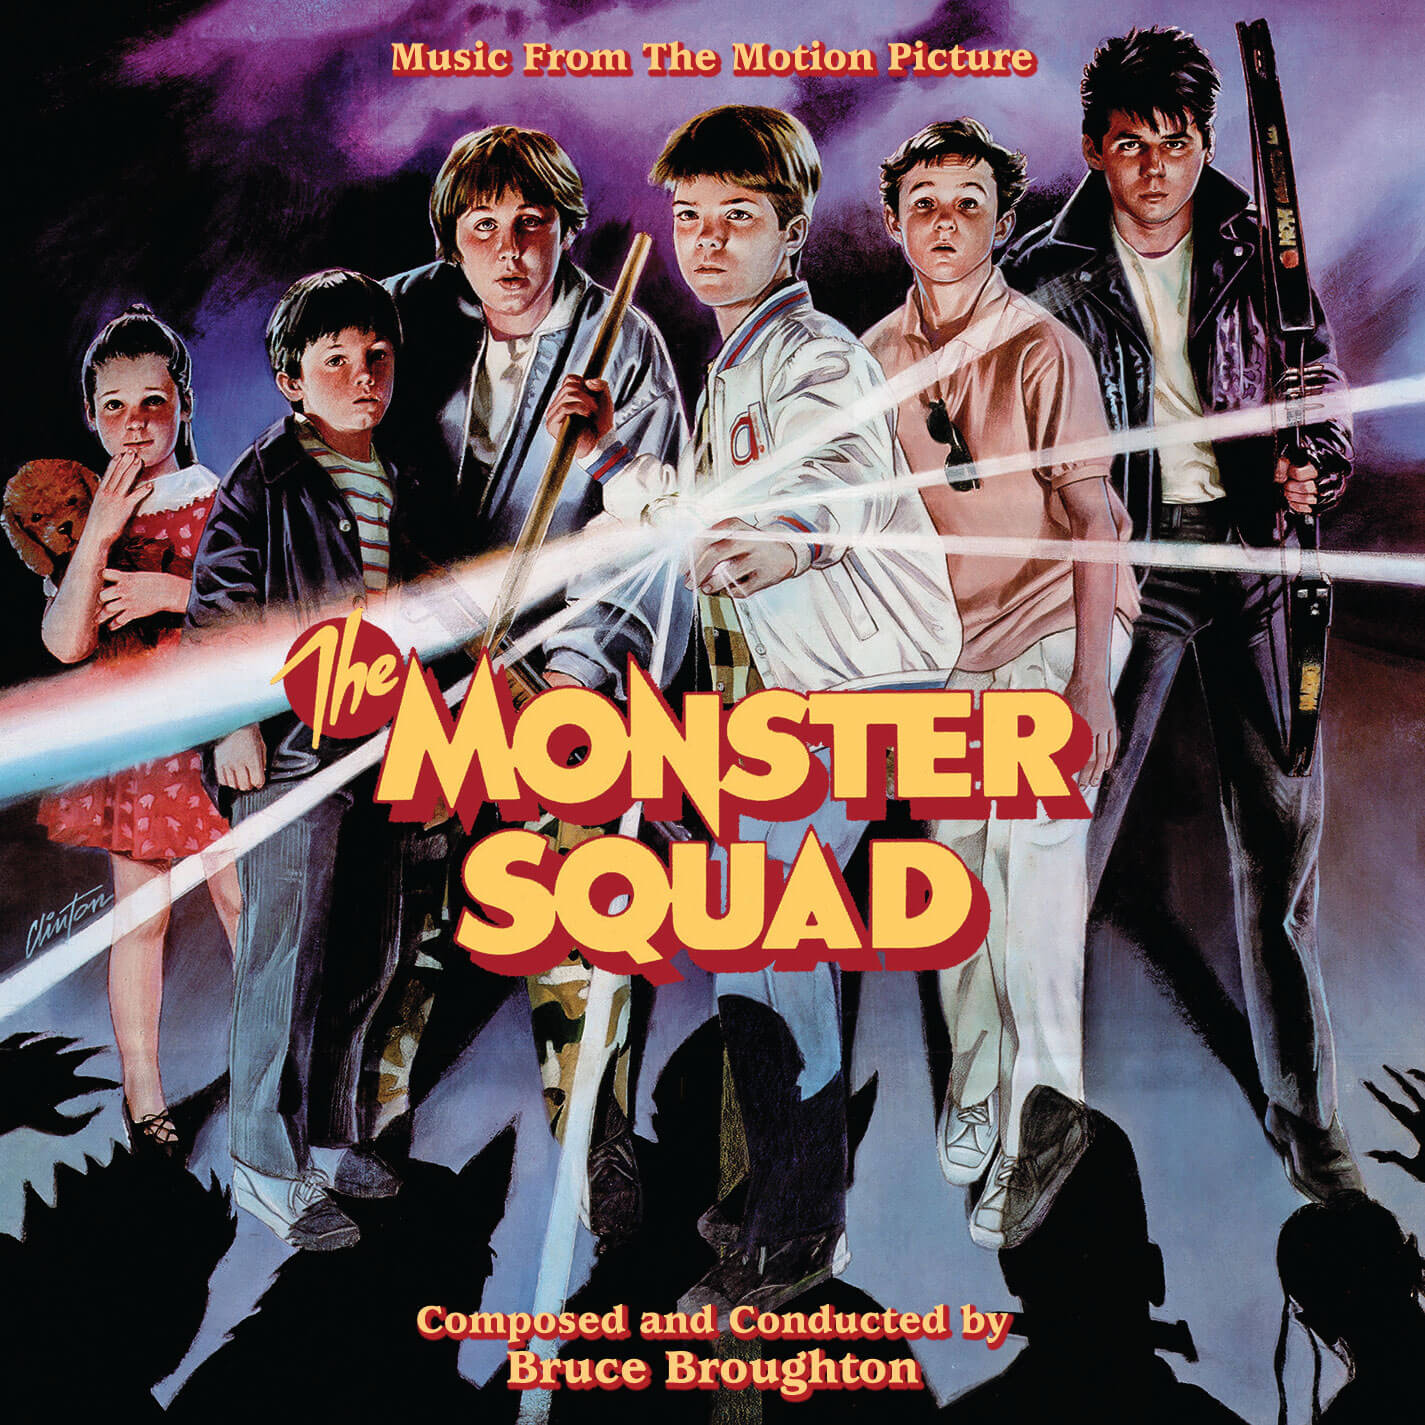 THE MONSTER SQUAD halloween movie